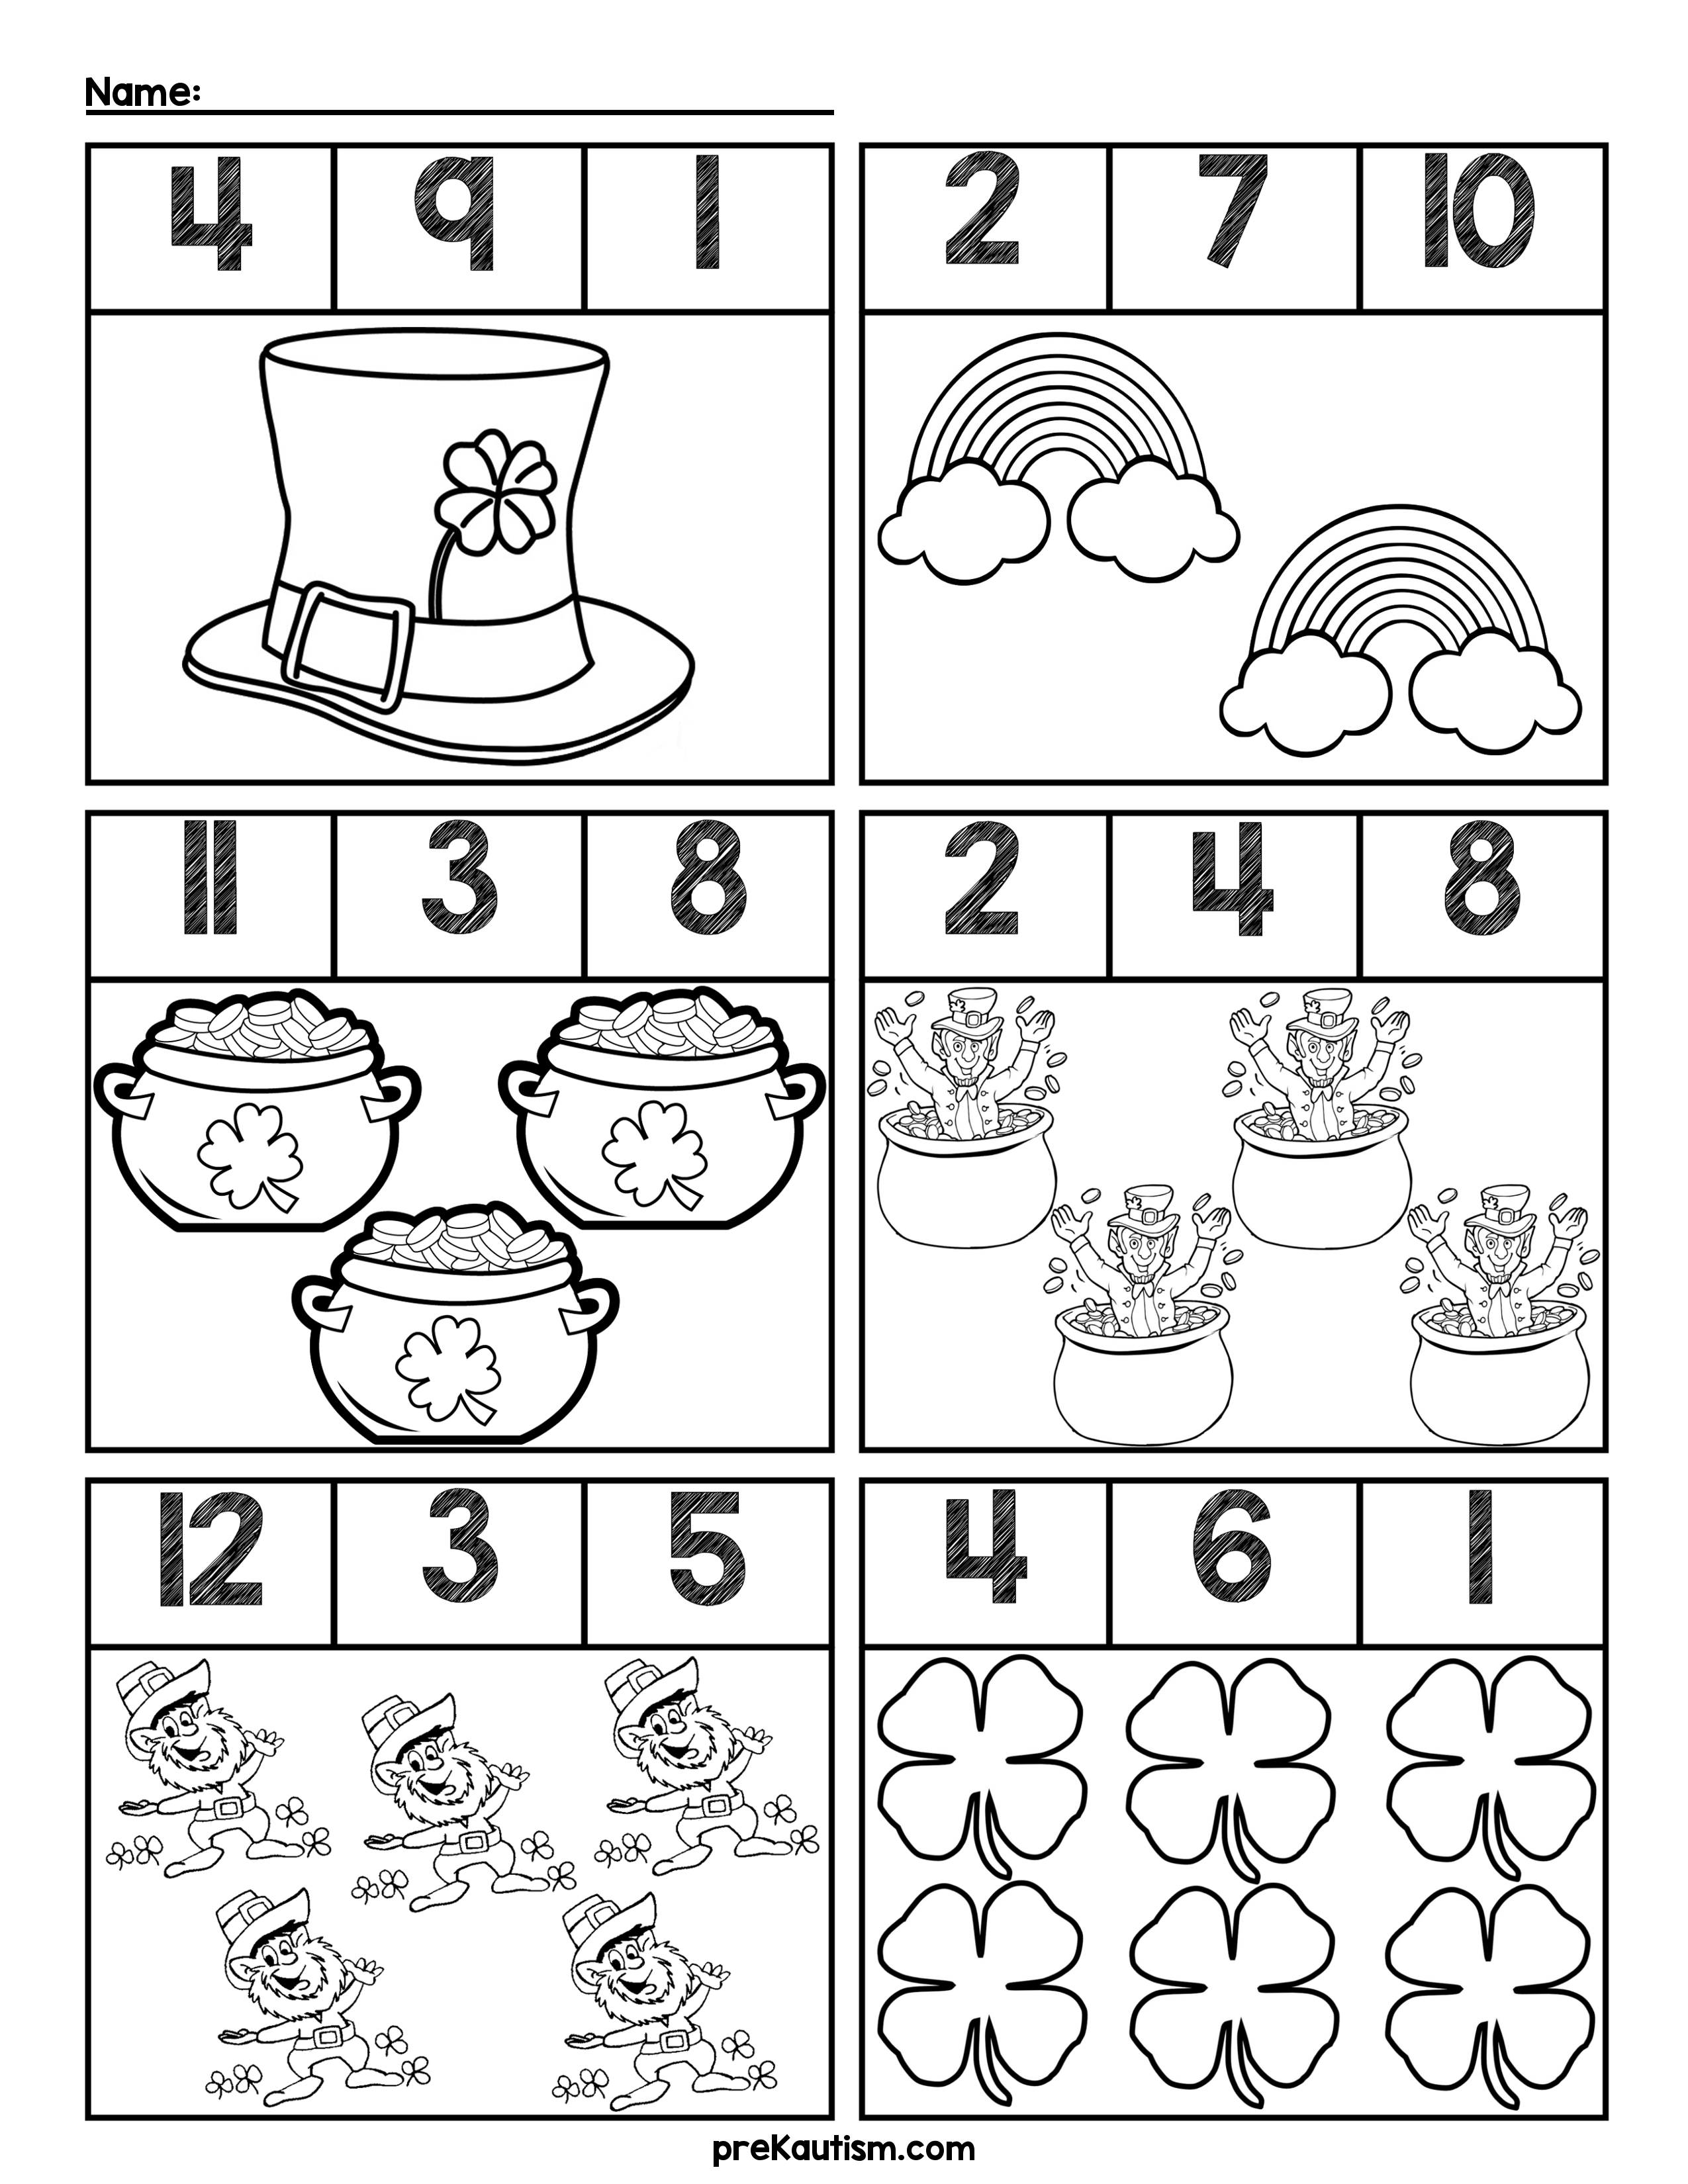 Predownload: Free St Patrick S Day Quantity Worksheets Numbers 1 12 St Patrick Day Activities March Preschool Worksheets St Patrick S Day Crafts [ 3300 x 2550 Pixel ]